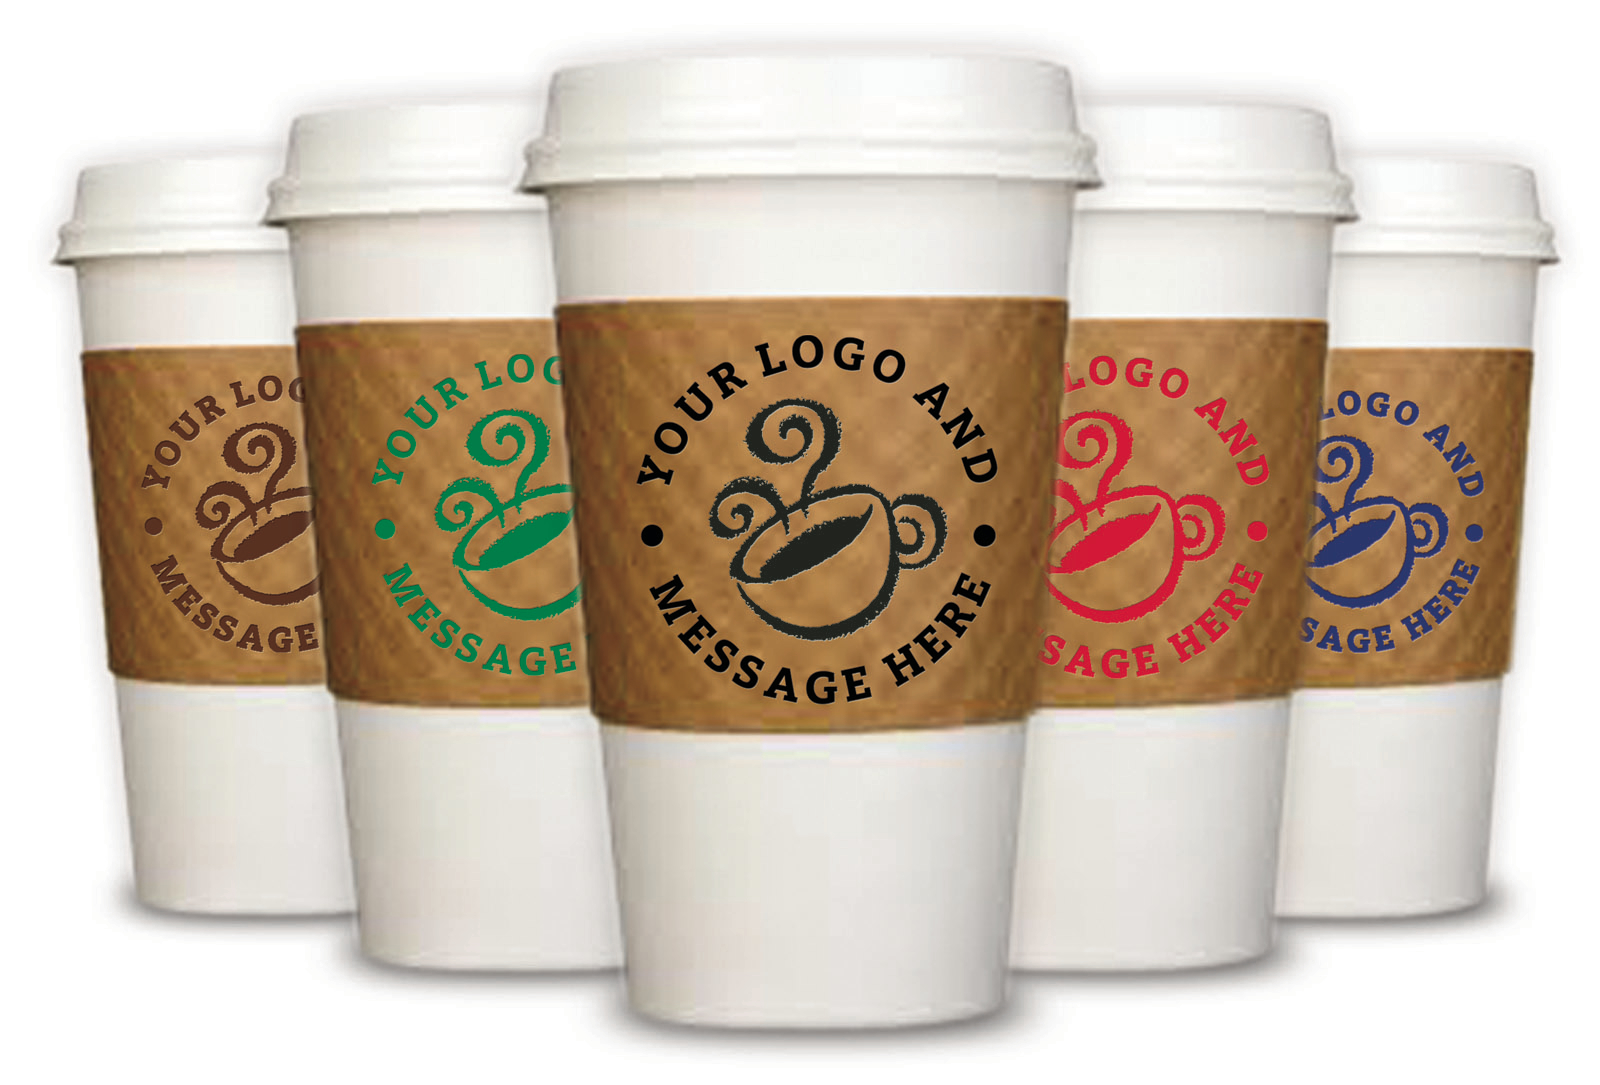 image of the Printed Coffee Cup Sleeves